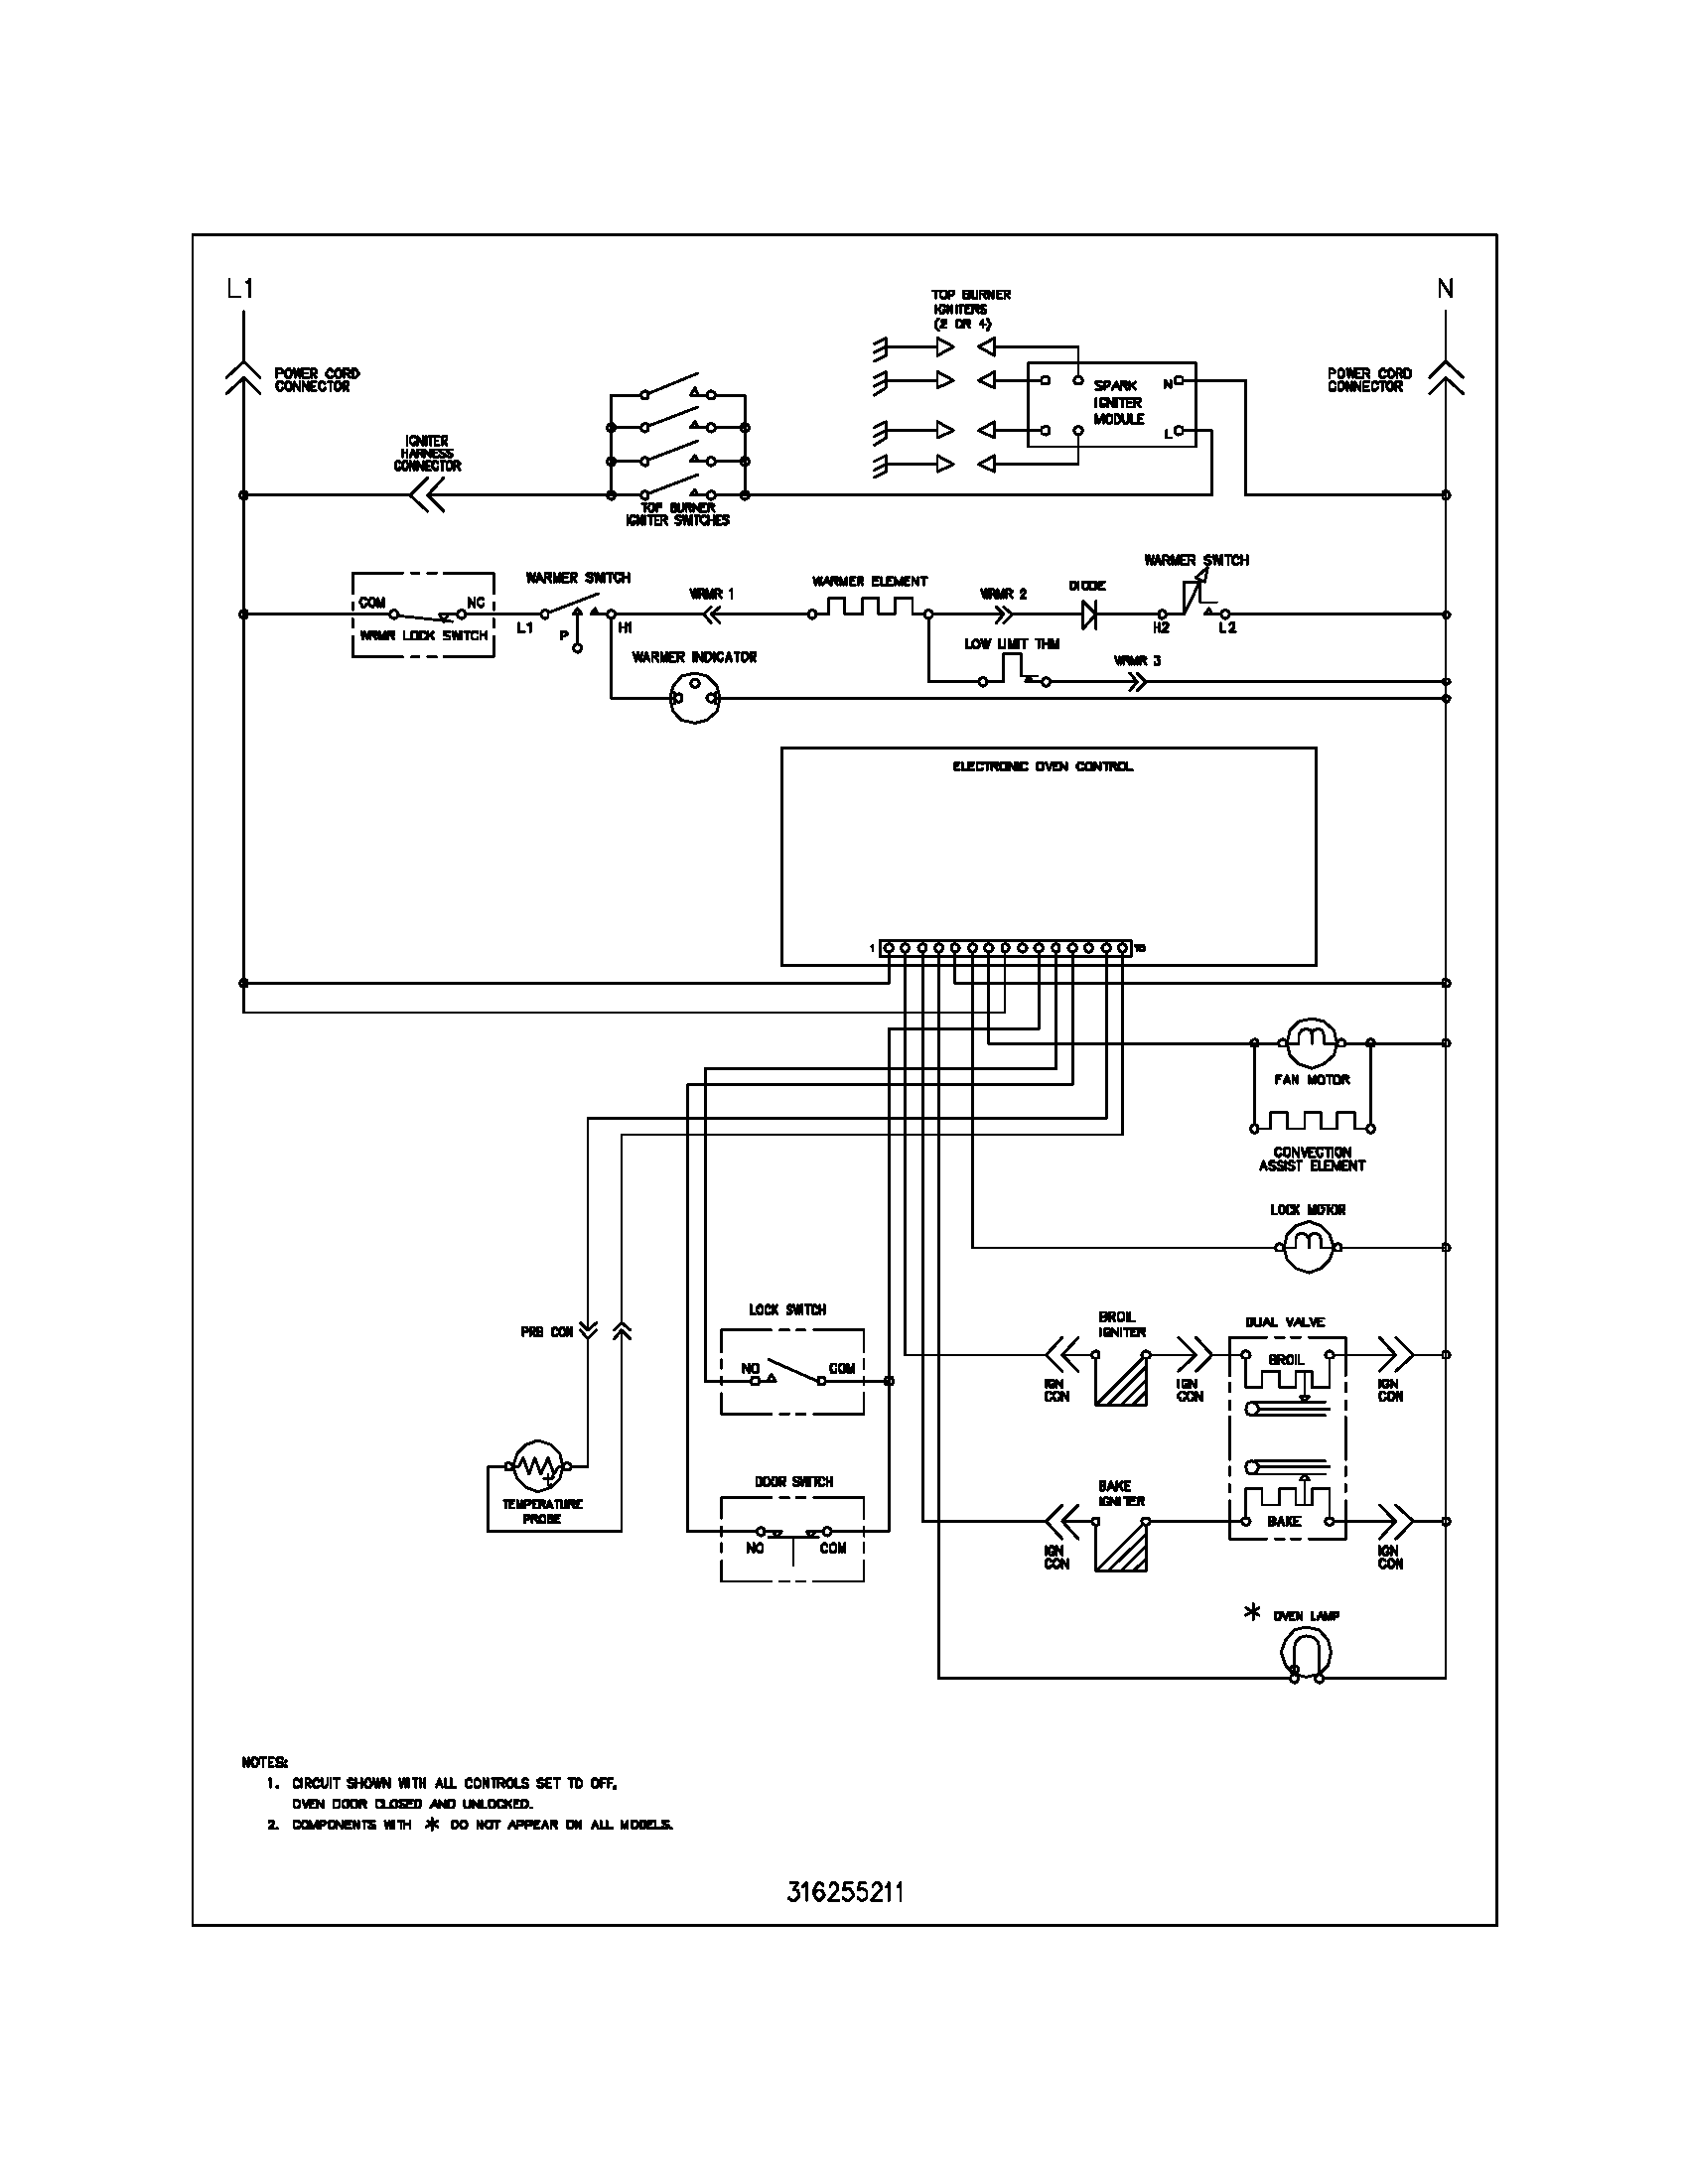 Electrolux Appliance Manuals Refrigerator Wiring Schematic